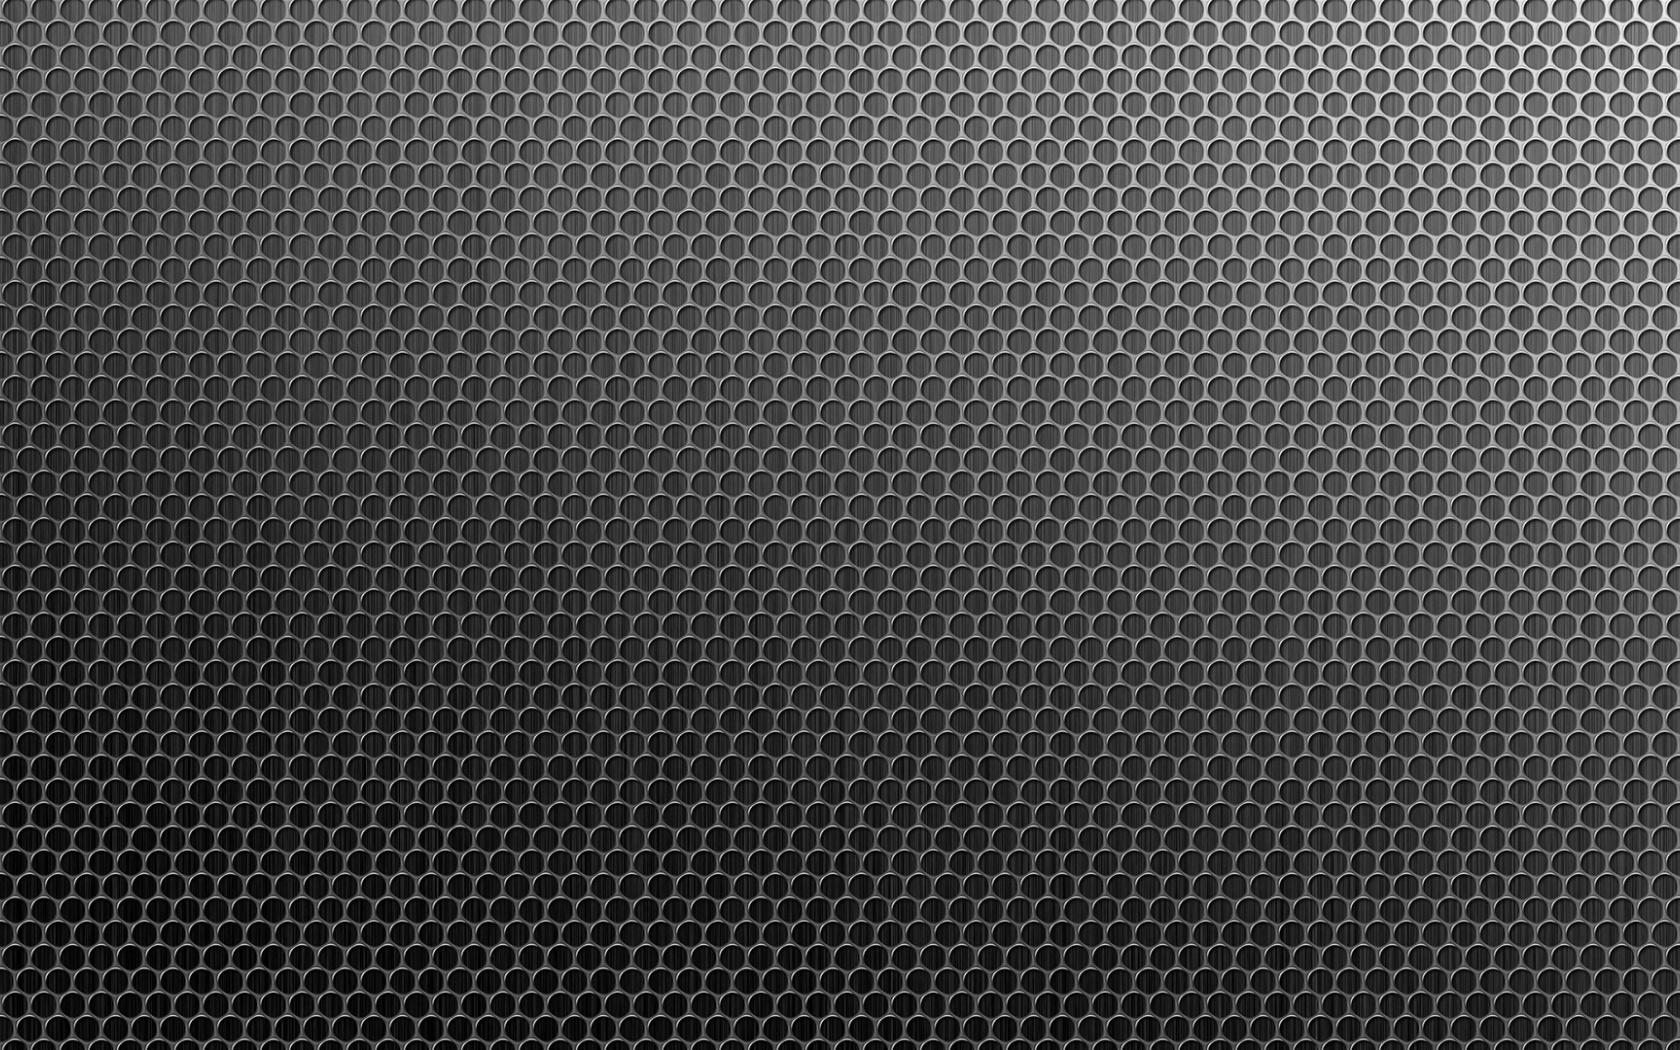 1366x768 grey honeycomb pattern - photo #15